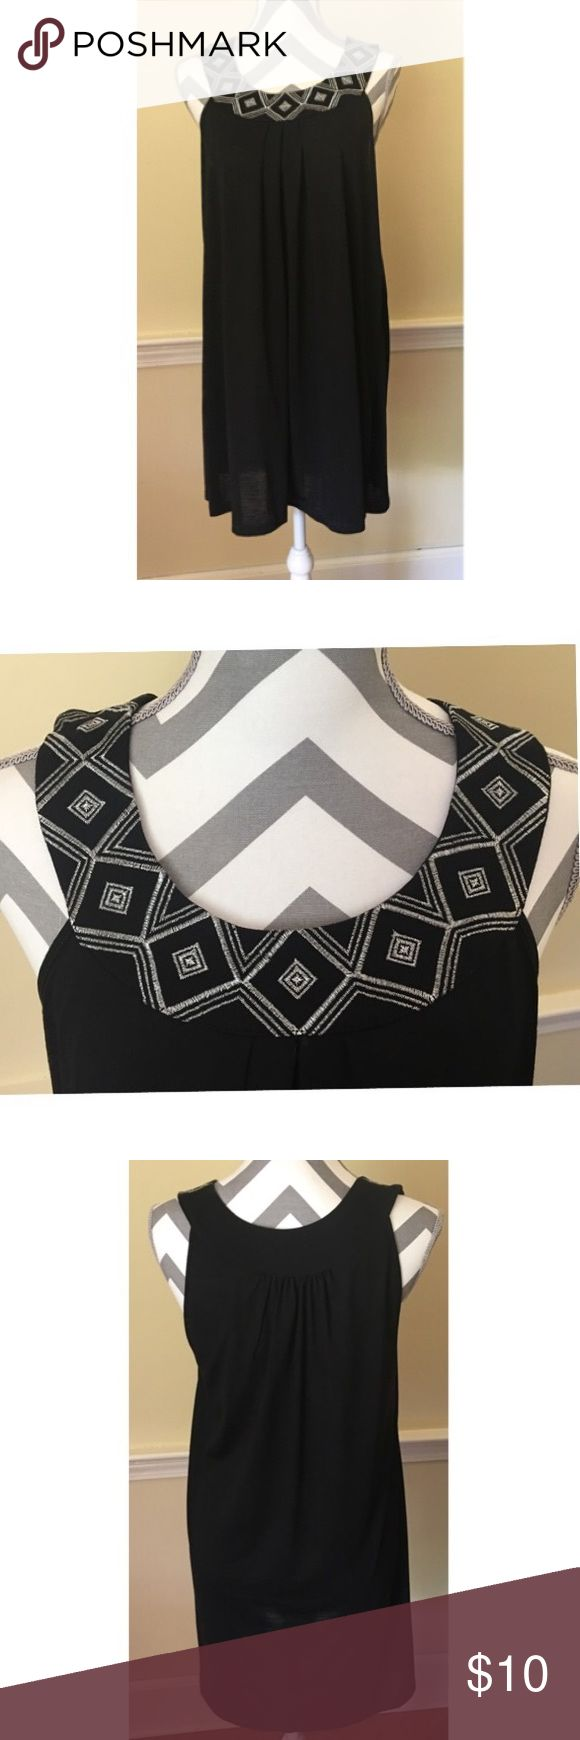 Black Bathing Suit Cover This is the perfect cover up for your next pool party. Size Small with silver embellishment on the neckline. Like New Condition New Directions Swim Coverups